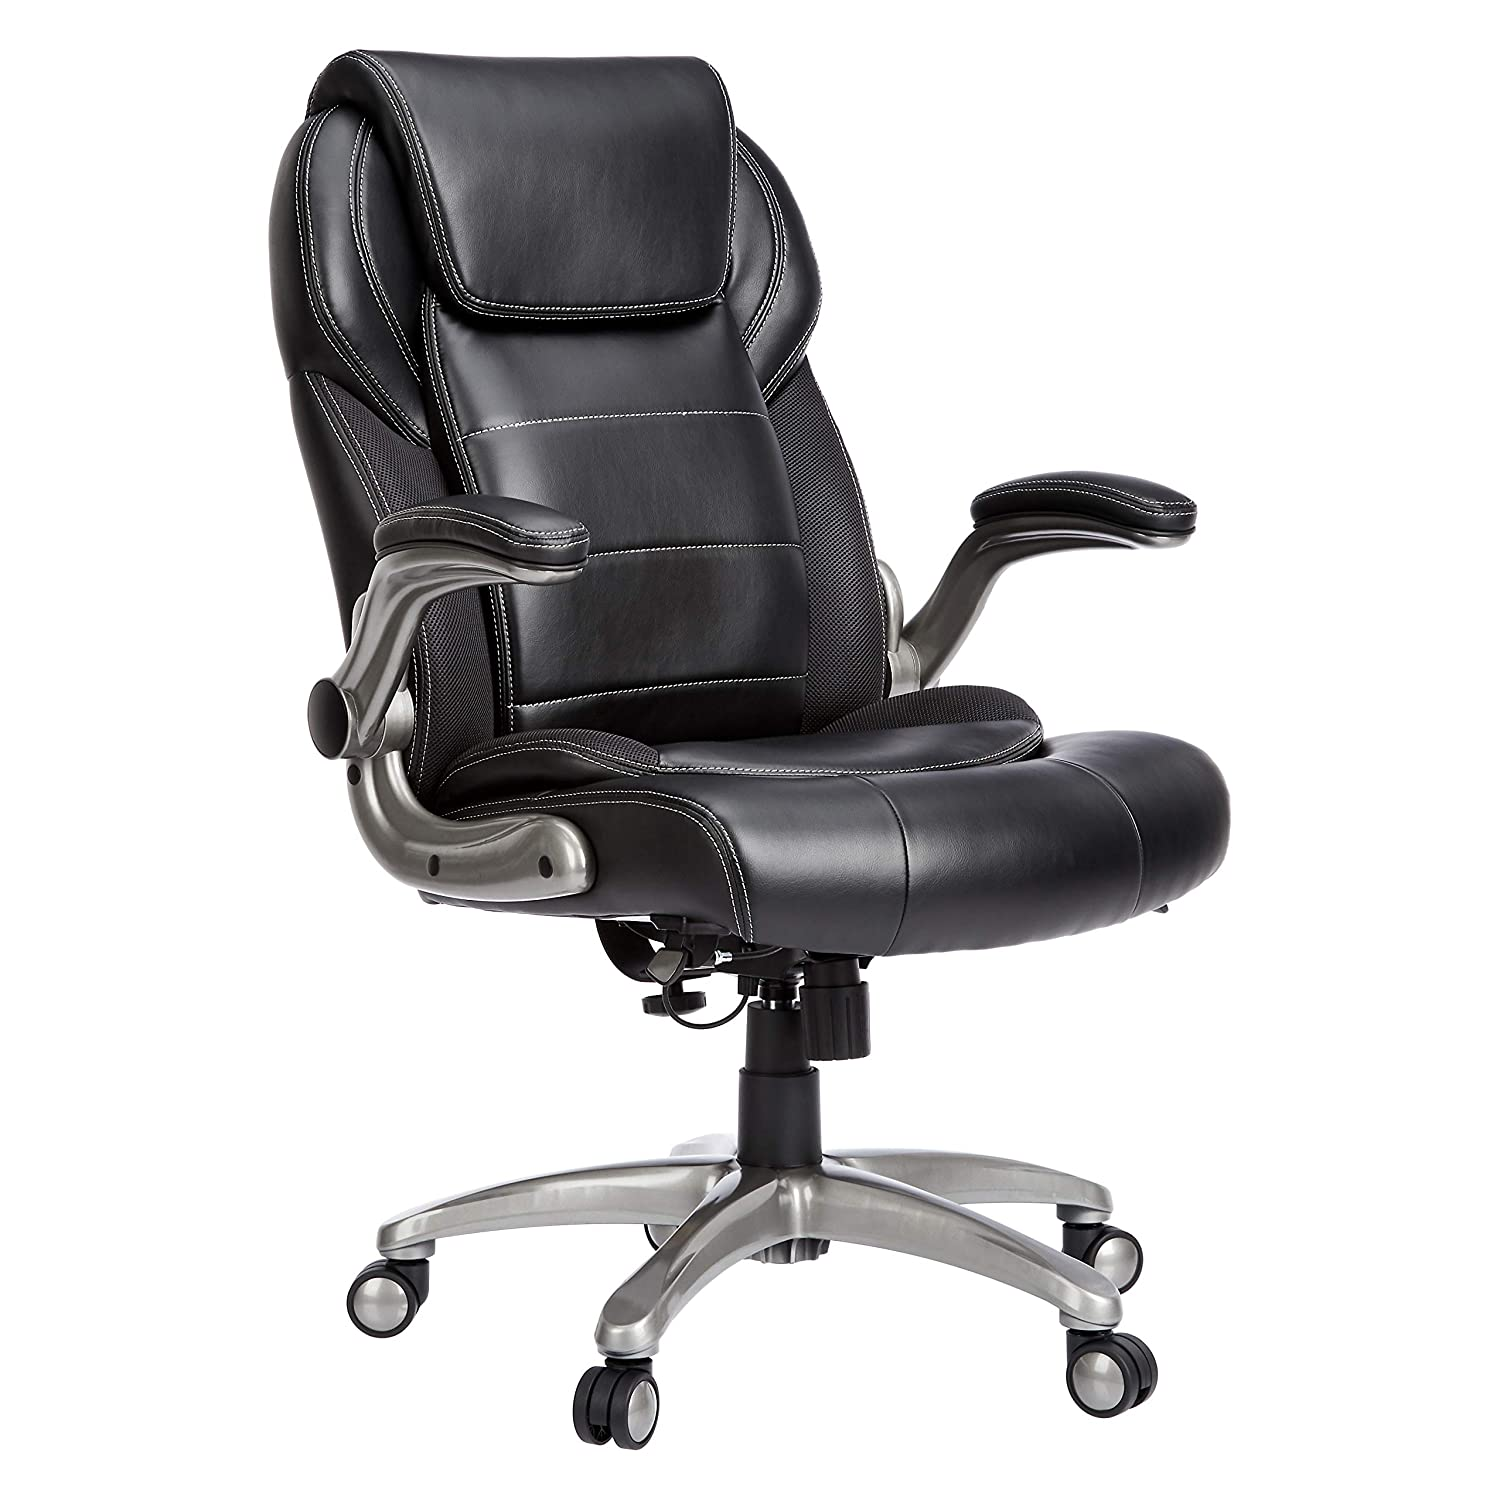 AmazonCommercial Ergonomic High-Back Leather Executive Chair with Flip-Up Arms and Lumbar Support, Black